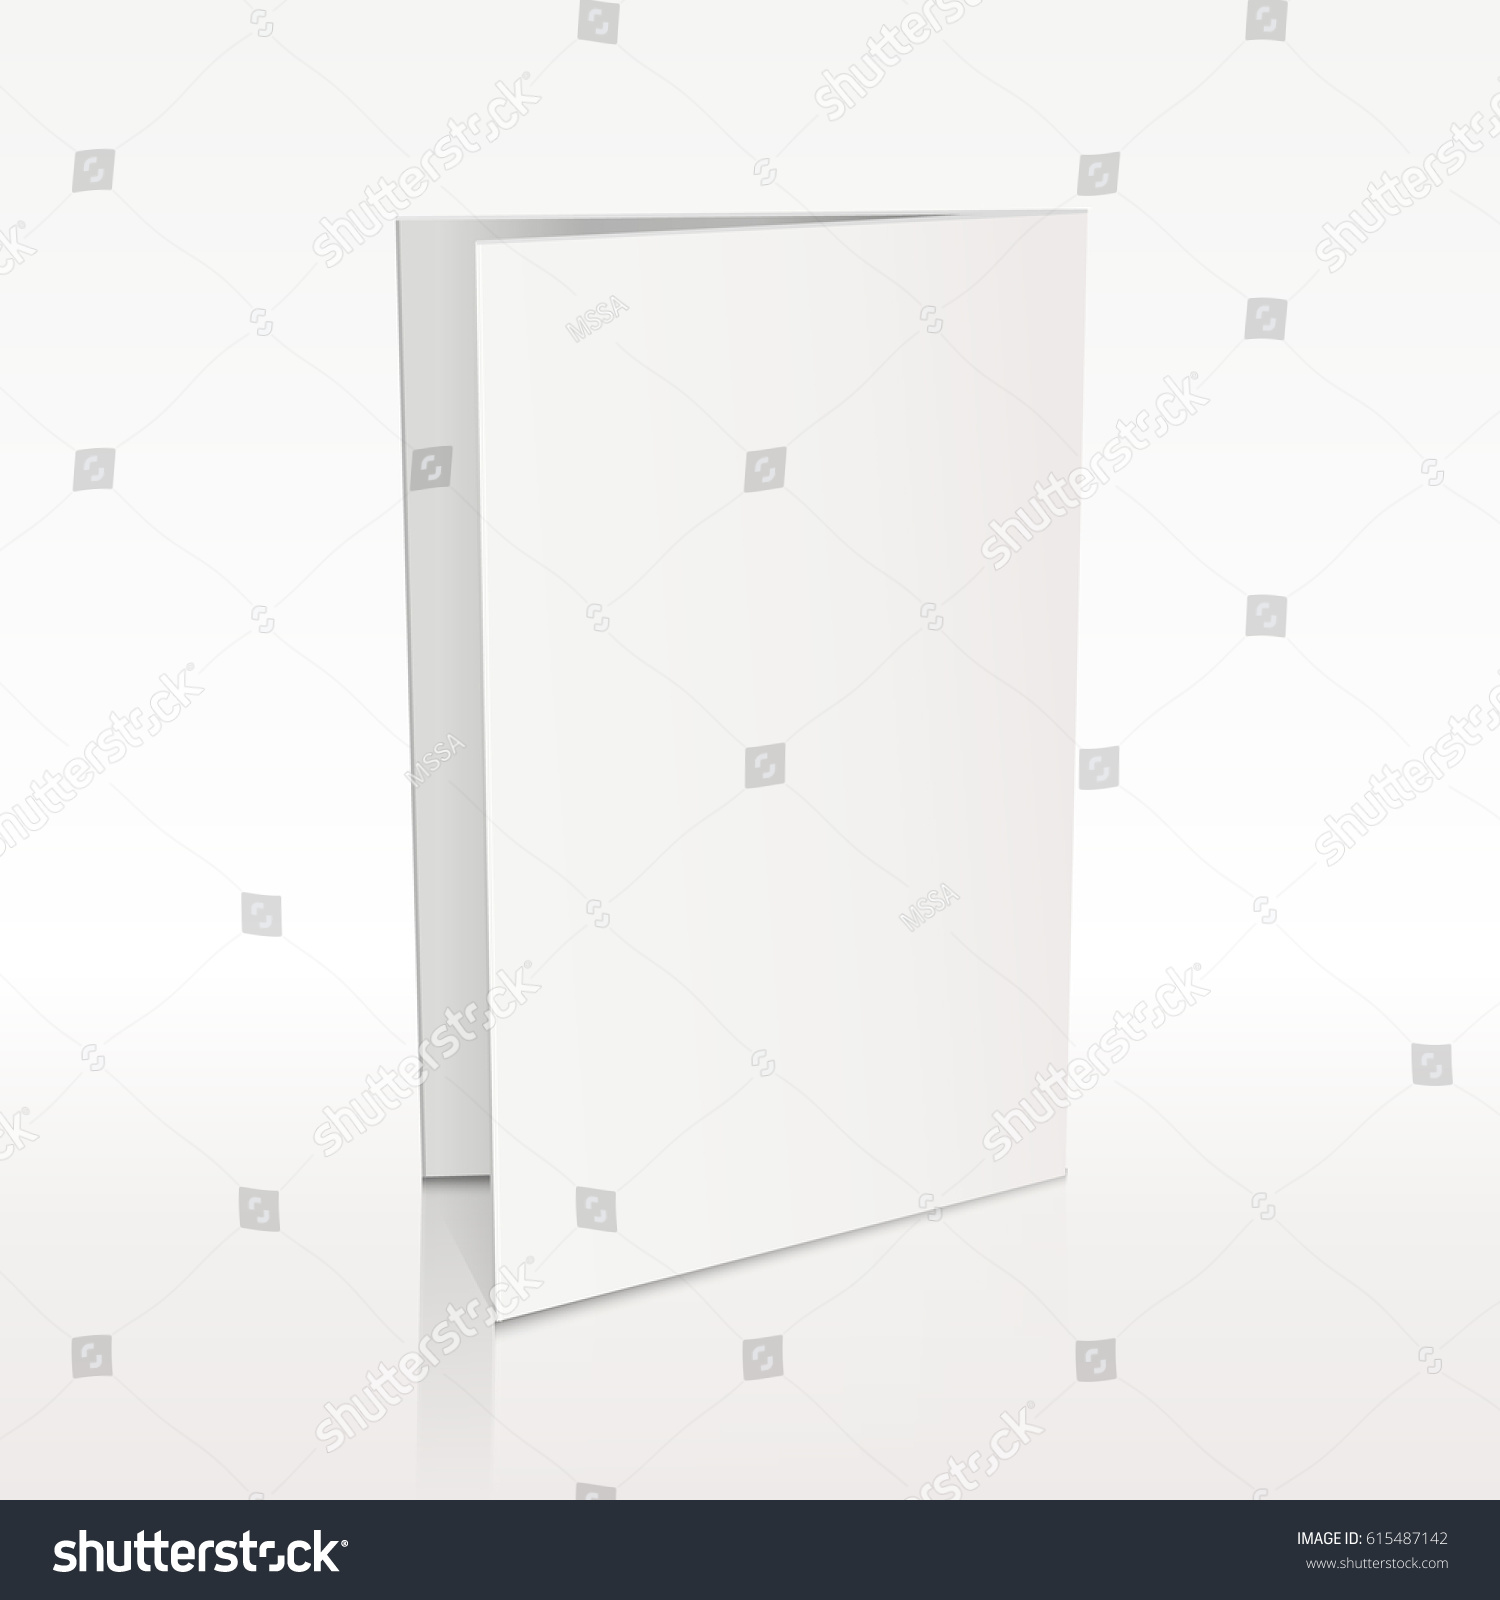 Blank Folder White Leaflet Vector 3d Stock Vector